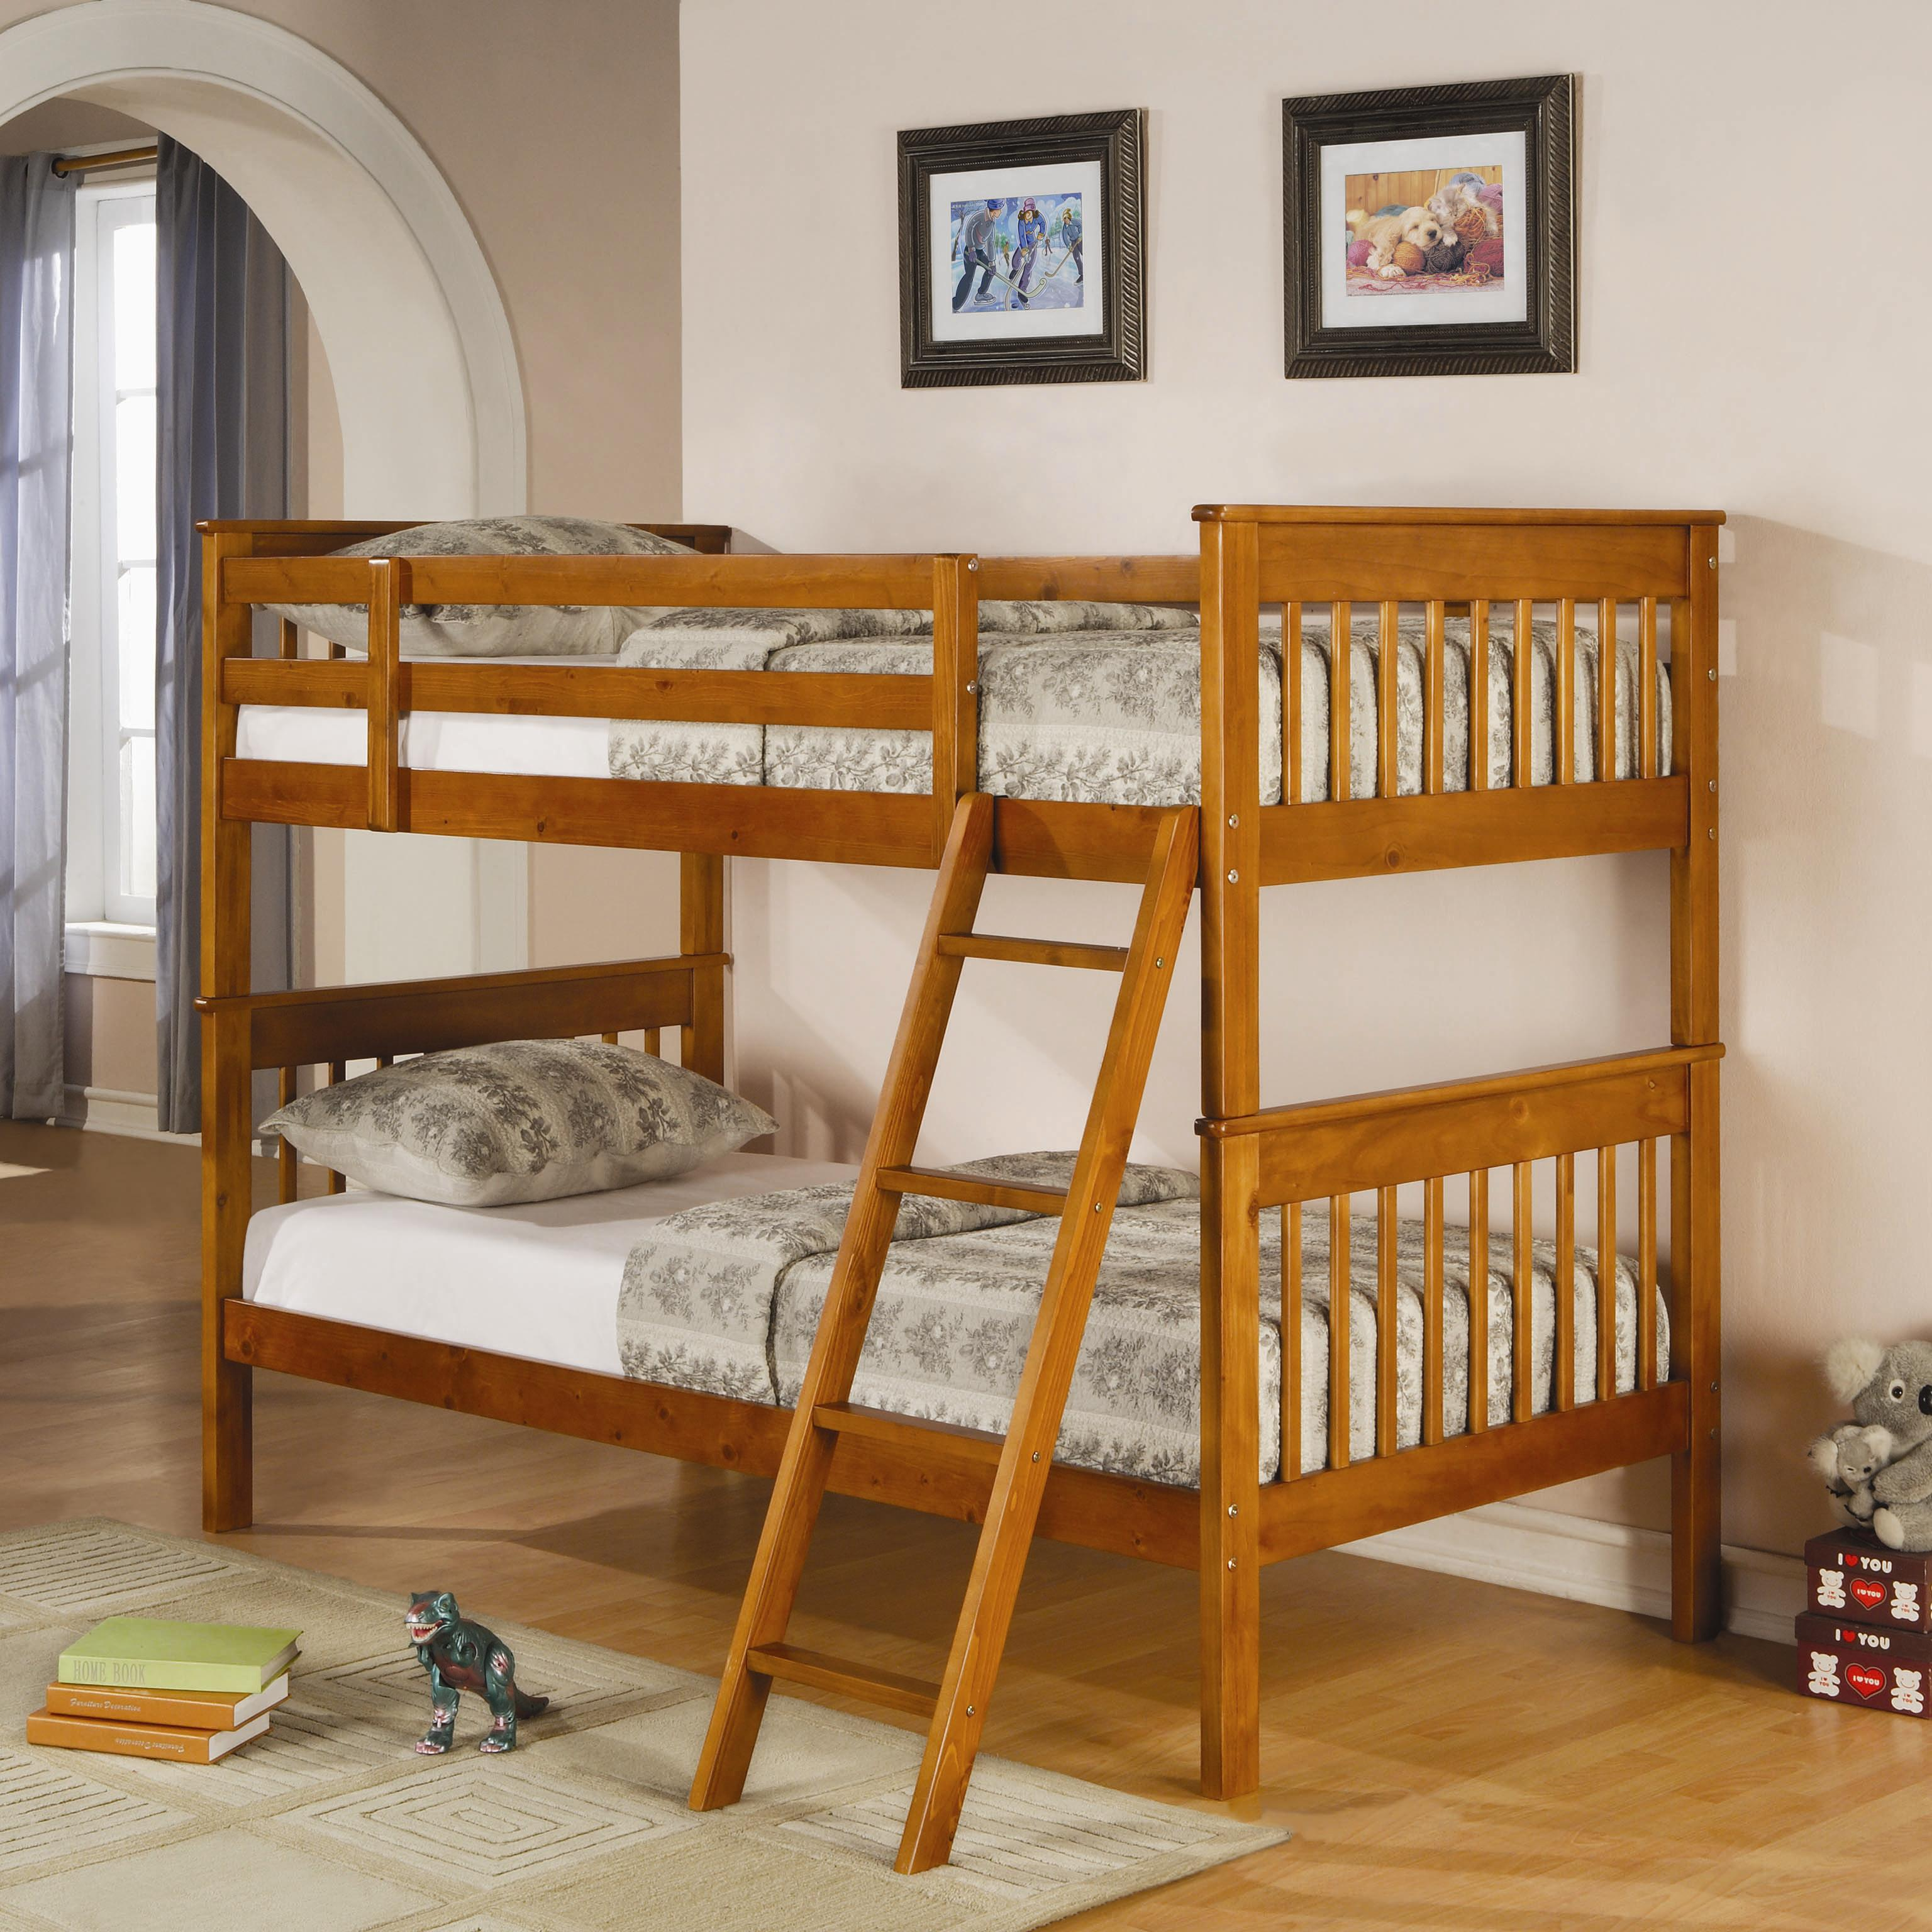 Coaster Bunks Twin Bunk Bed - Item Number: 460233